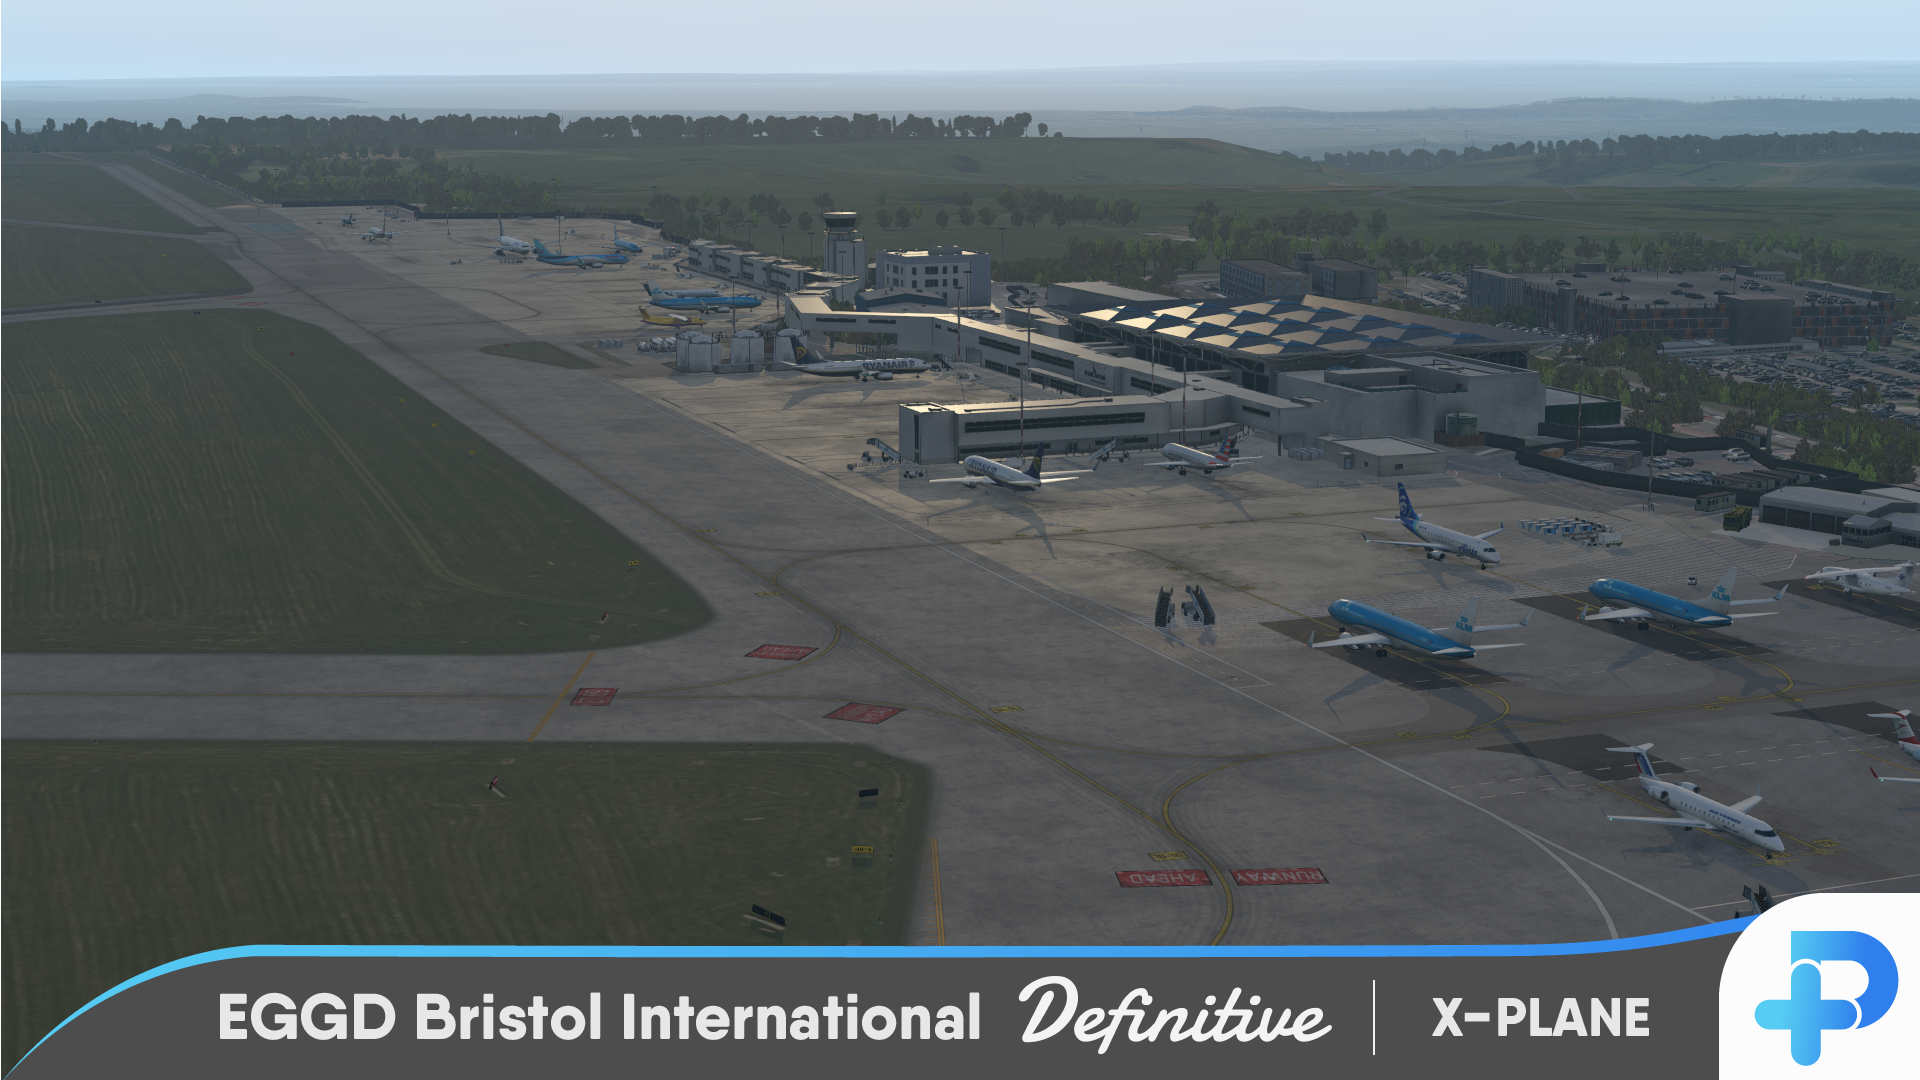 Bristol International - Definitive